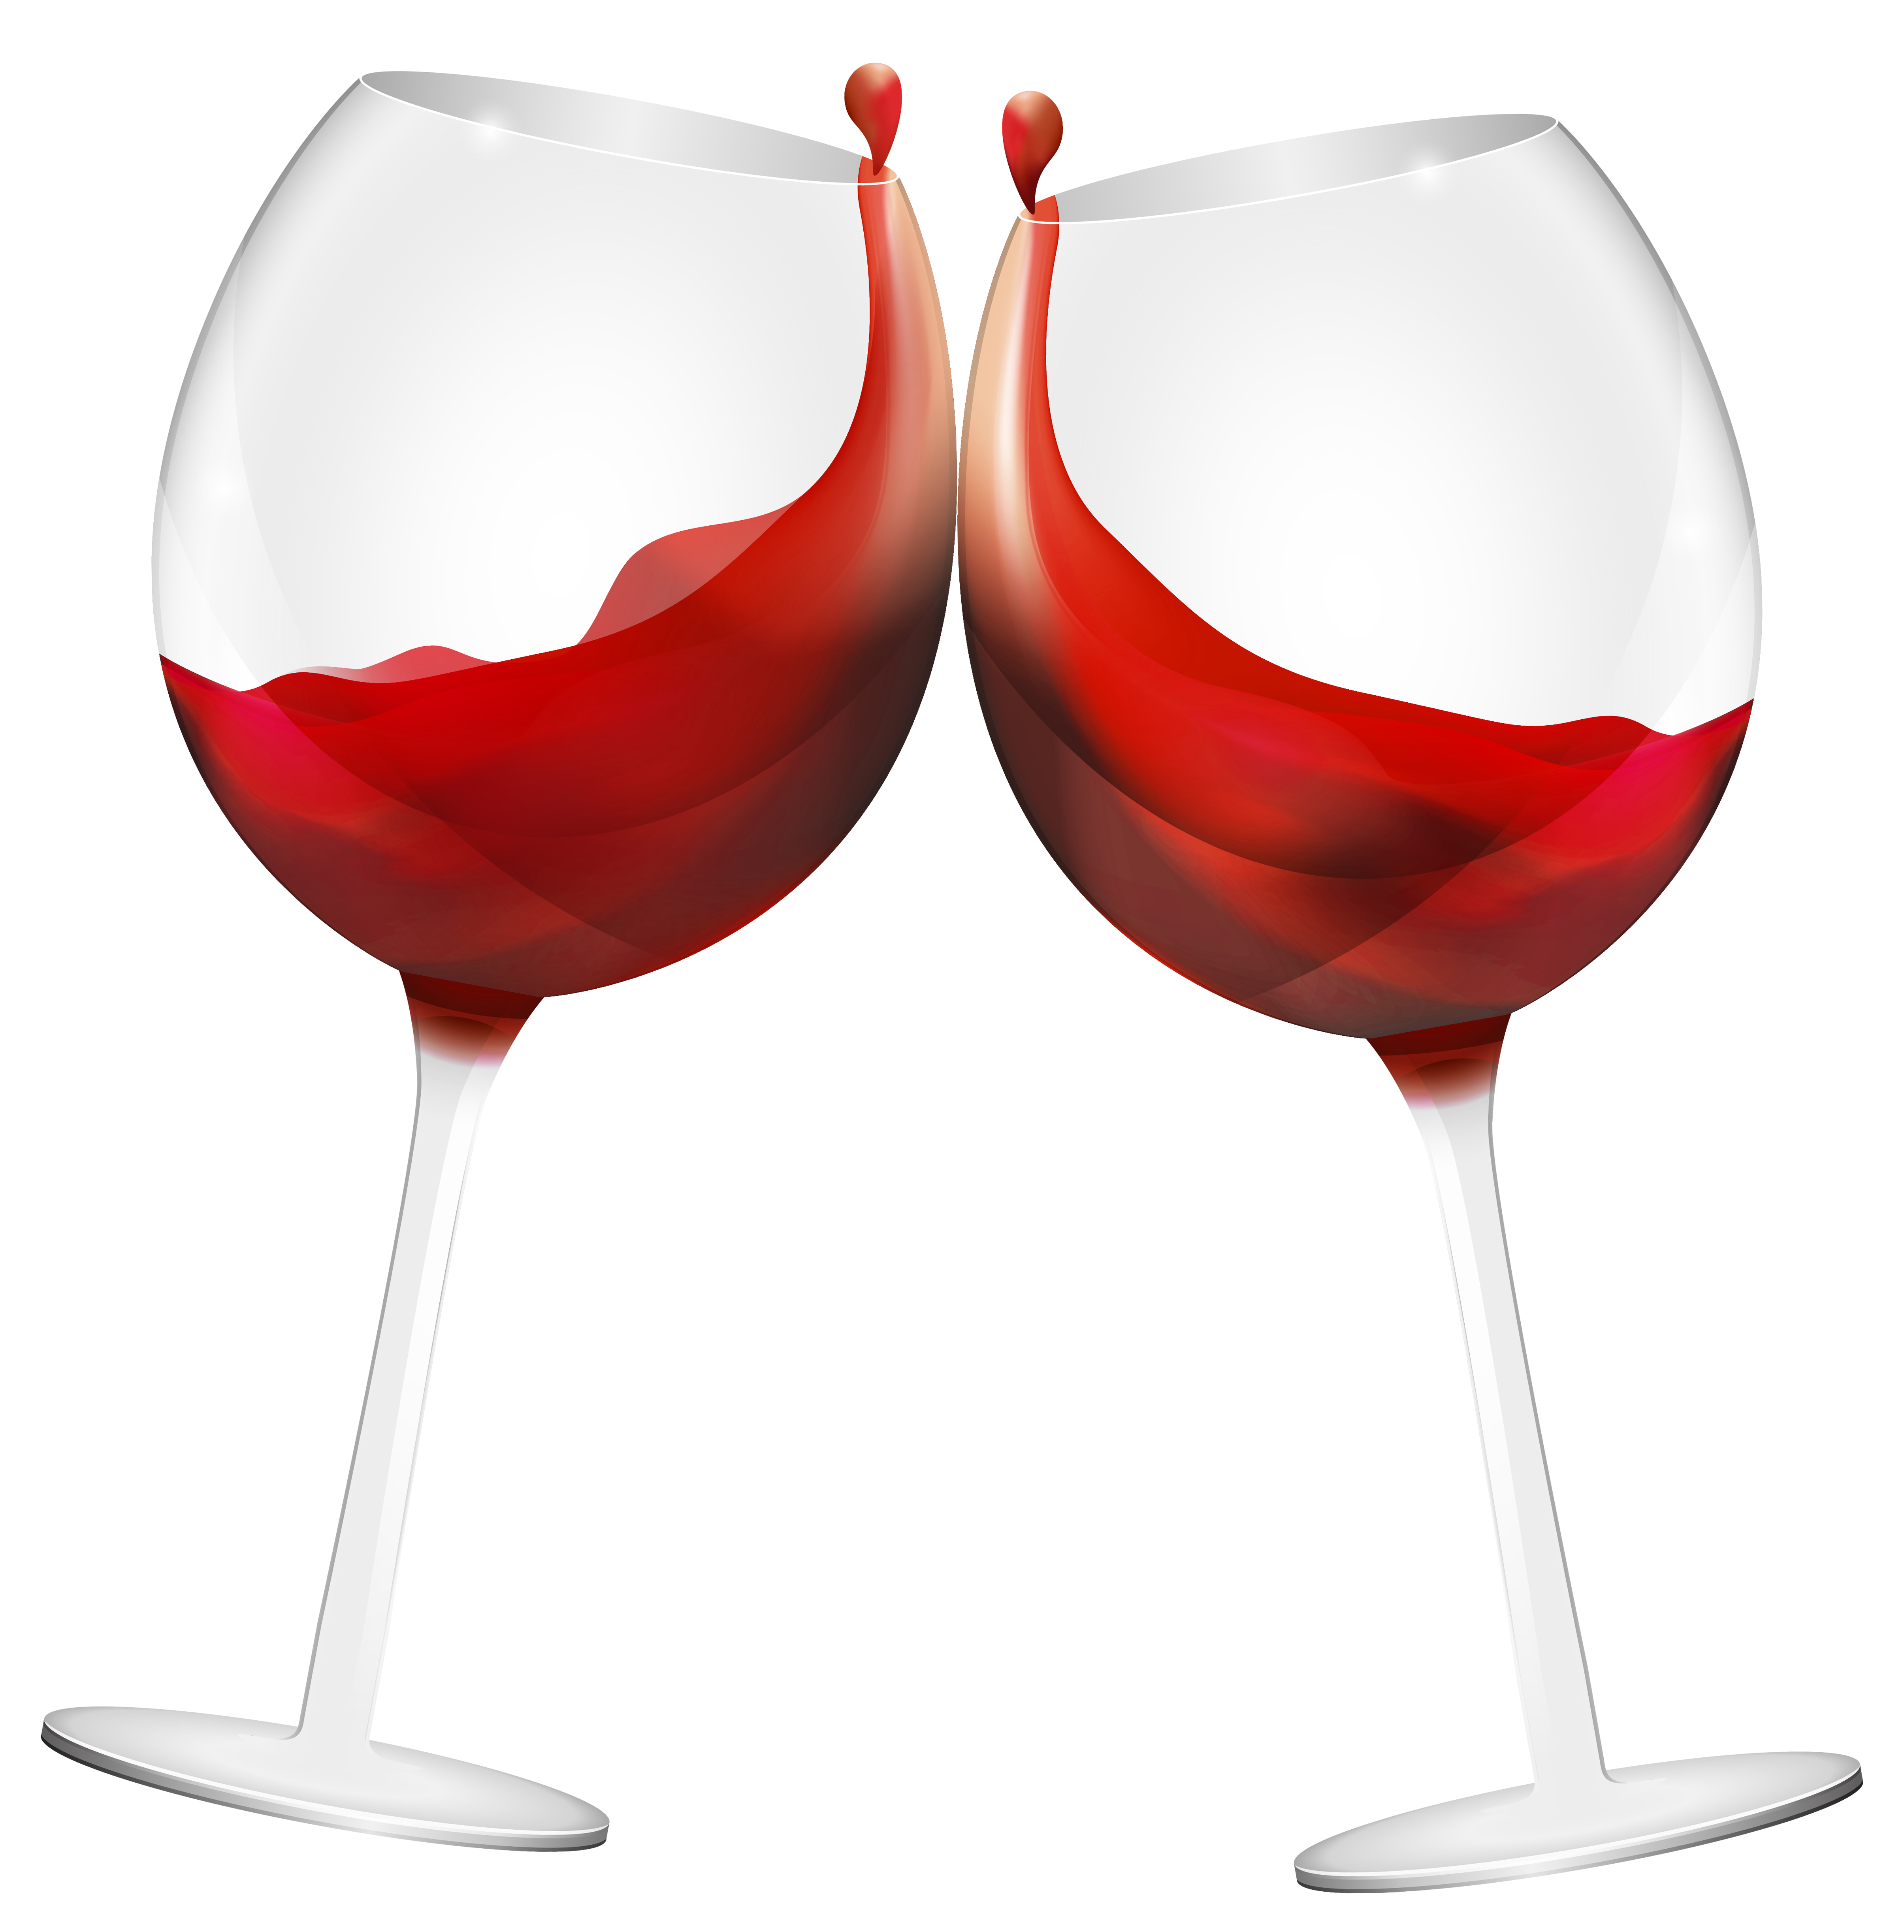 Wine images clipart picture download Free Wine Glass Clipart | Free download best Free Wine Glass Clipart ... picture download